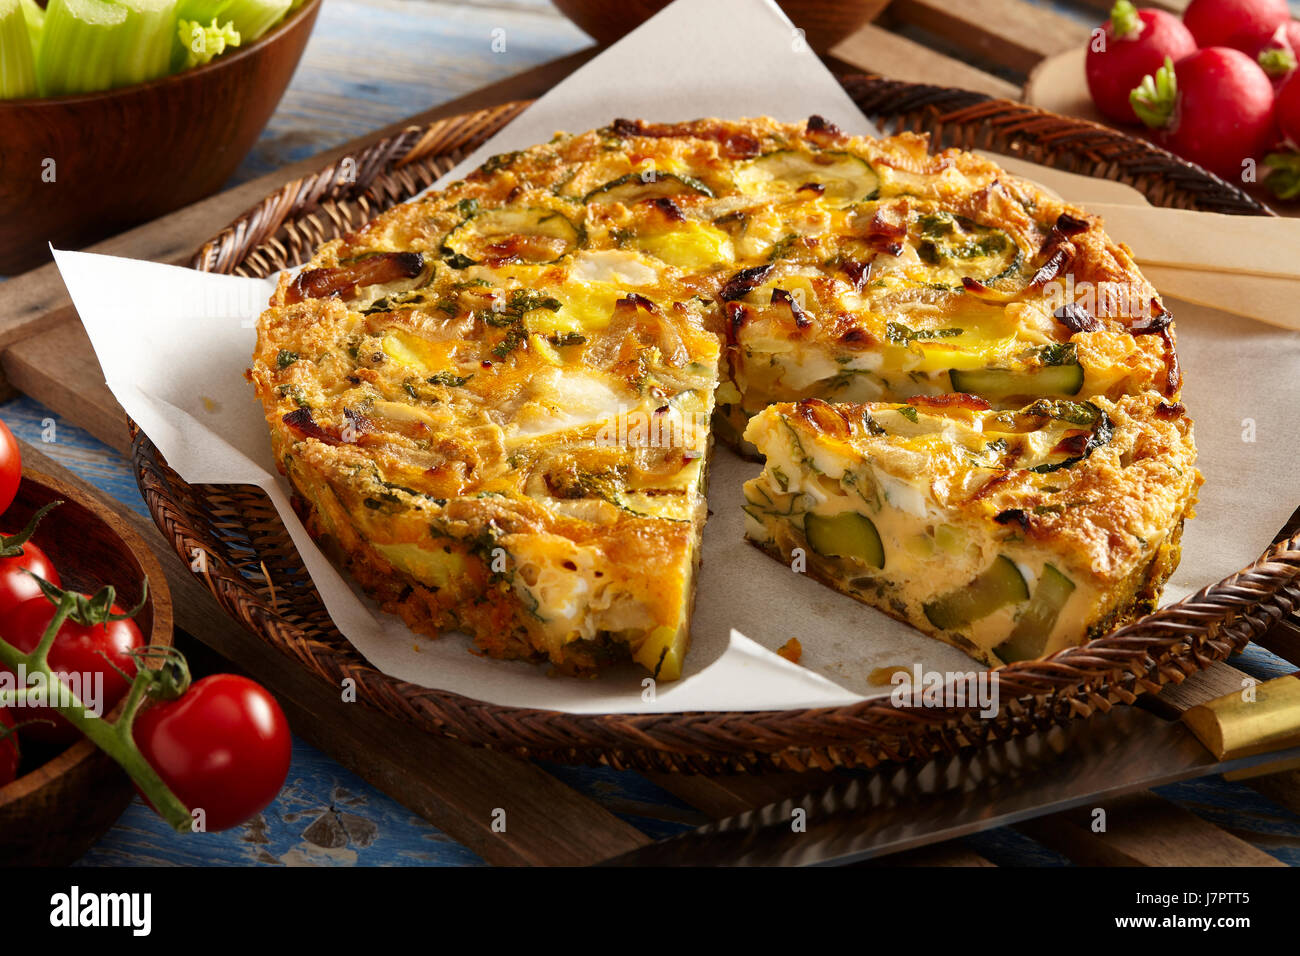 slow cooked courgette mint frittata - Stock Image